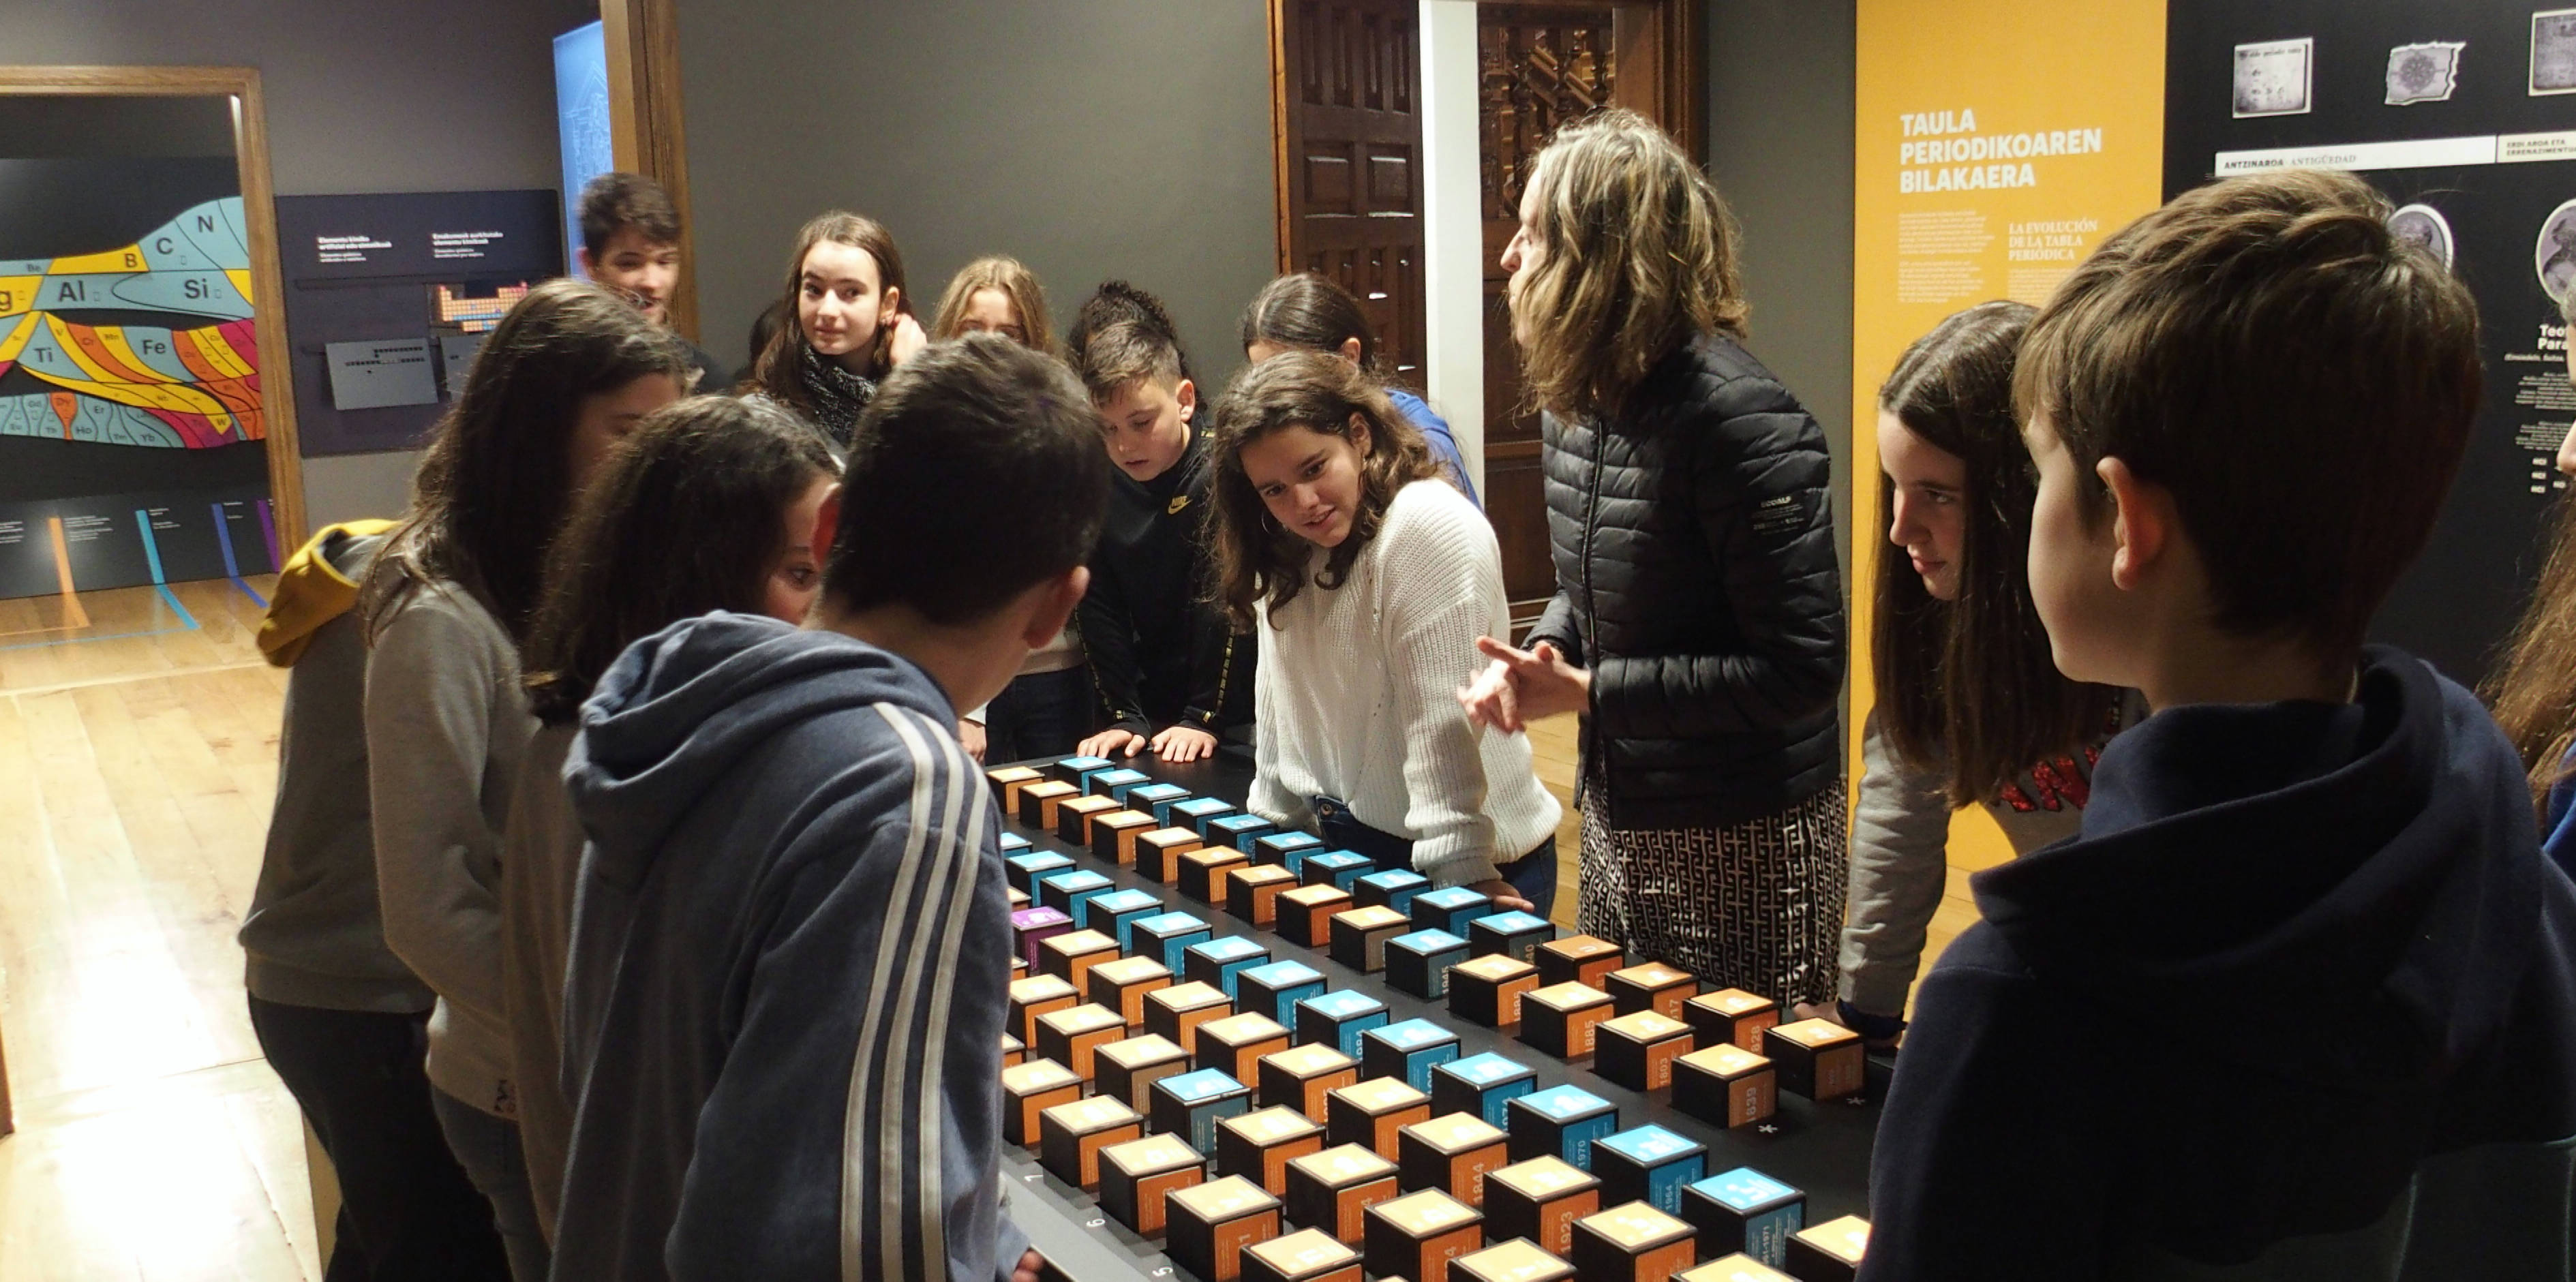 Students visiting the temporary exhibition on the periodic table.